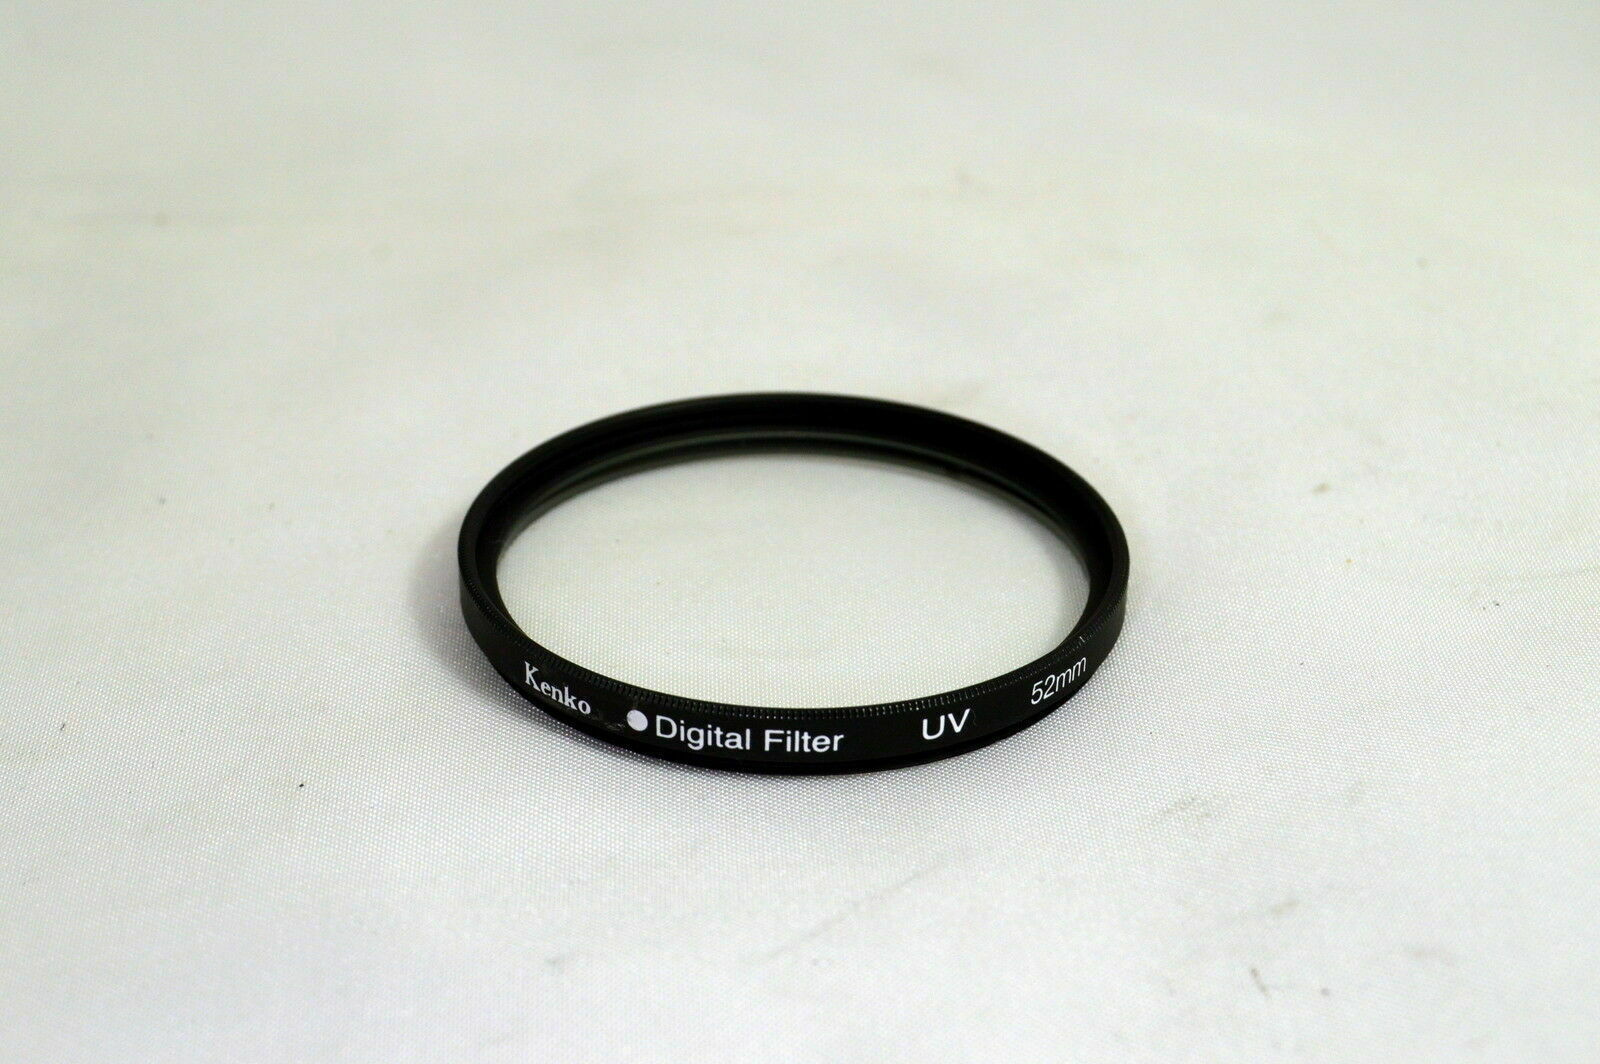 Kenko UV protection 52mm Digital Lens Filter for 18-55mm VR II kit zoom